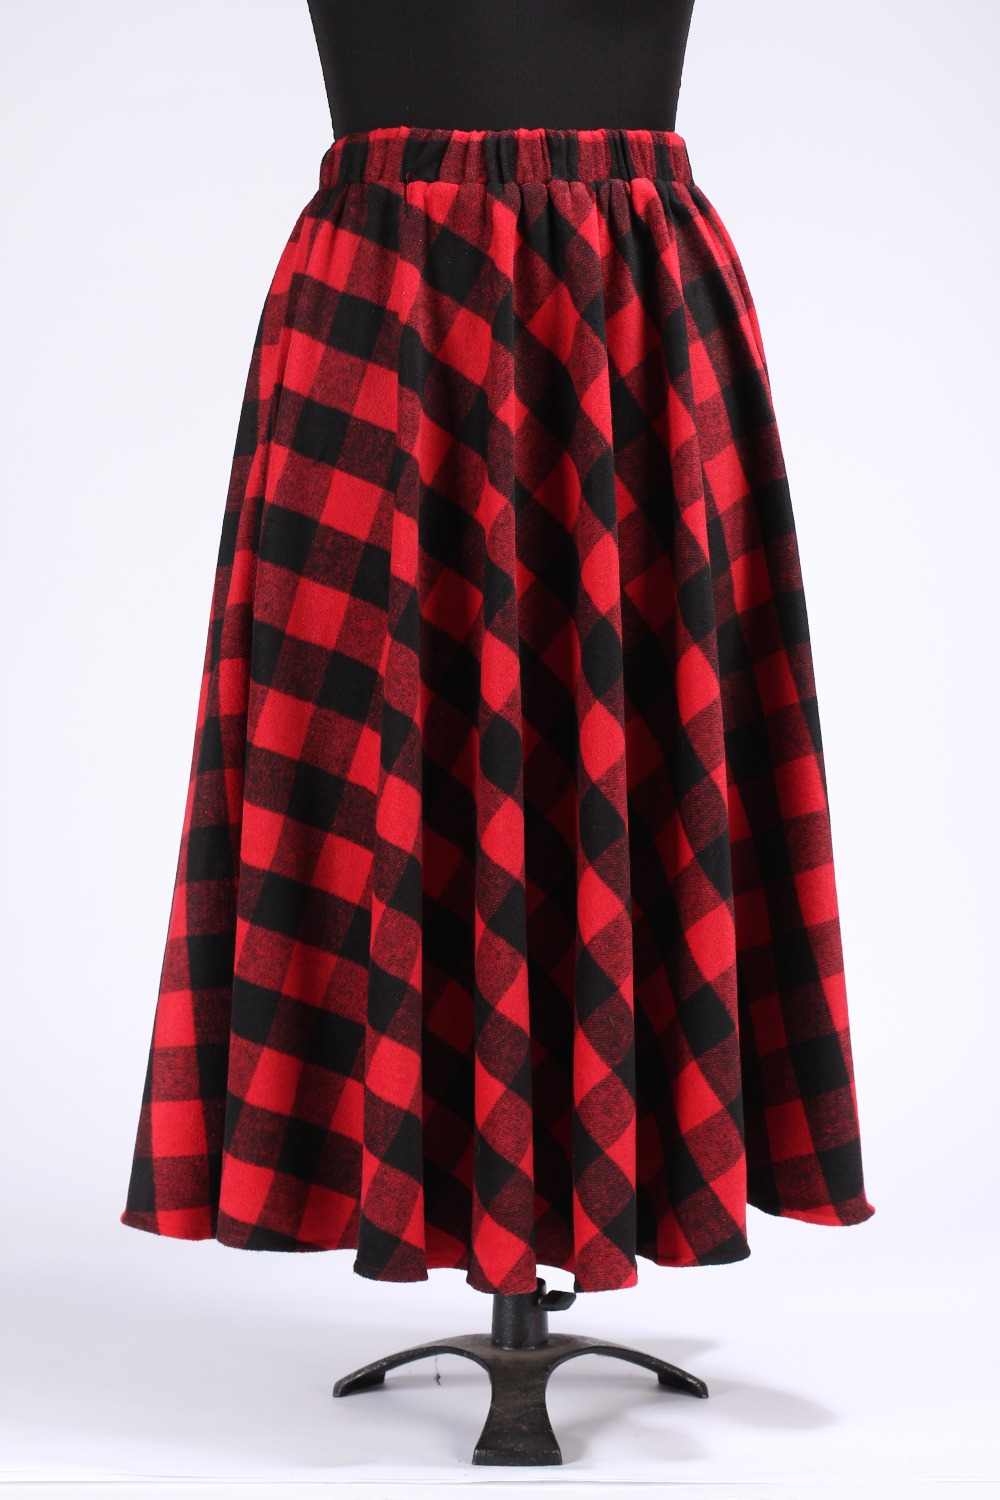 Winter Red Black Plaid Skirts Womens Autumn Size 5xl 6xl 7xl Line Wool Ankle Length Maxi